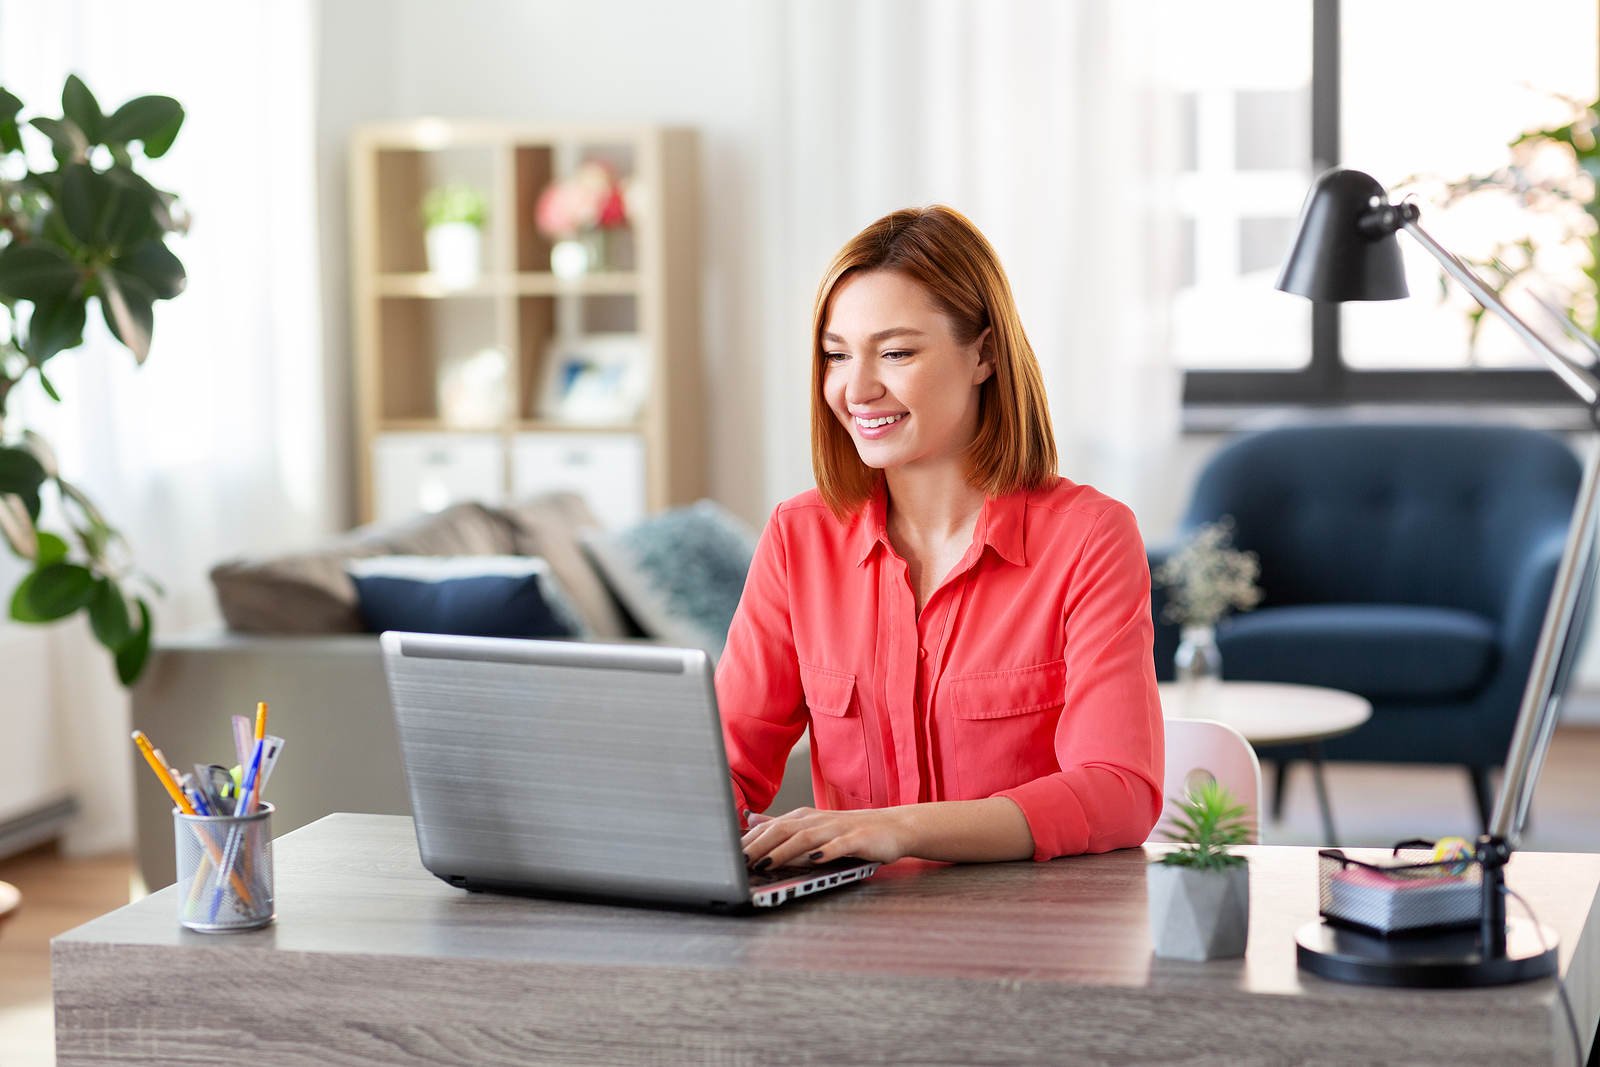 How to Create a Great Online Professional Profile